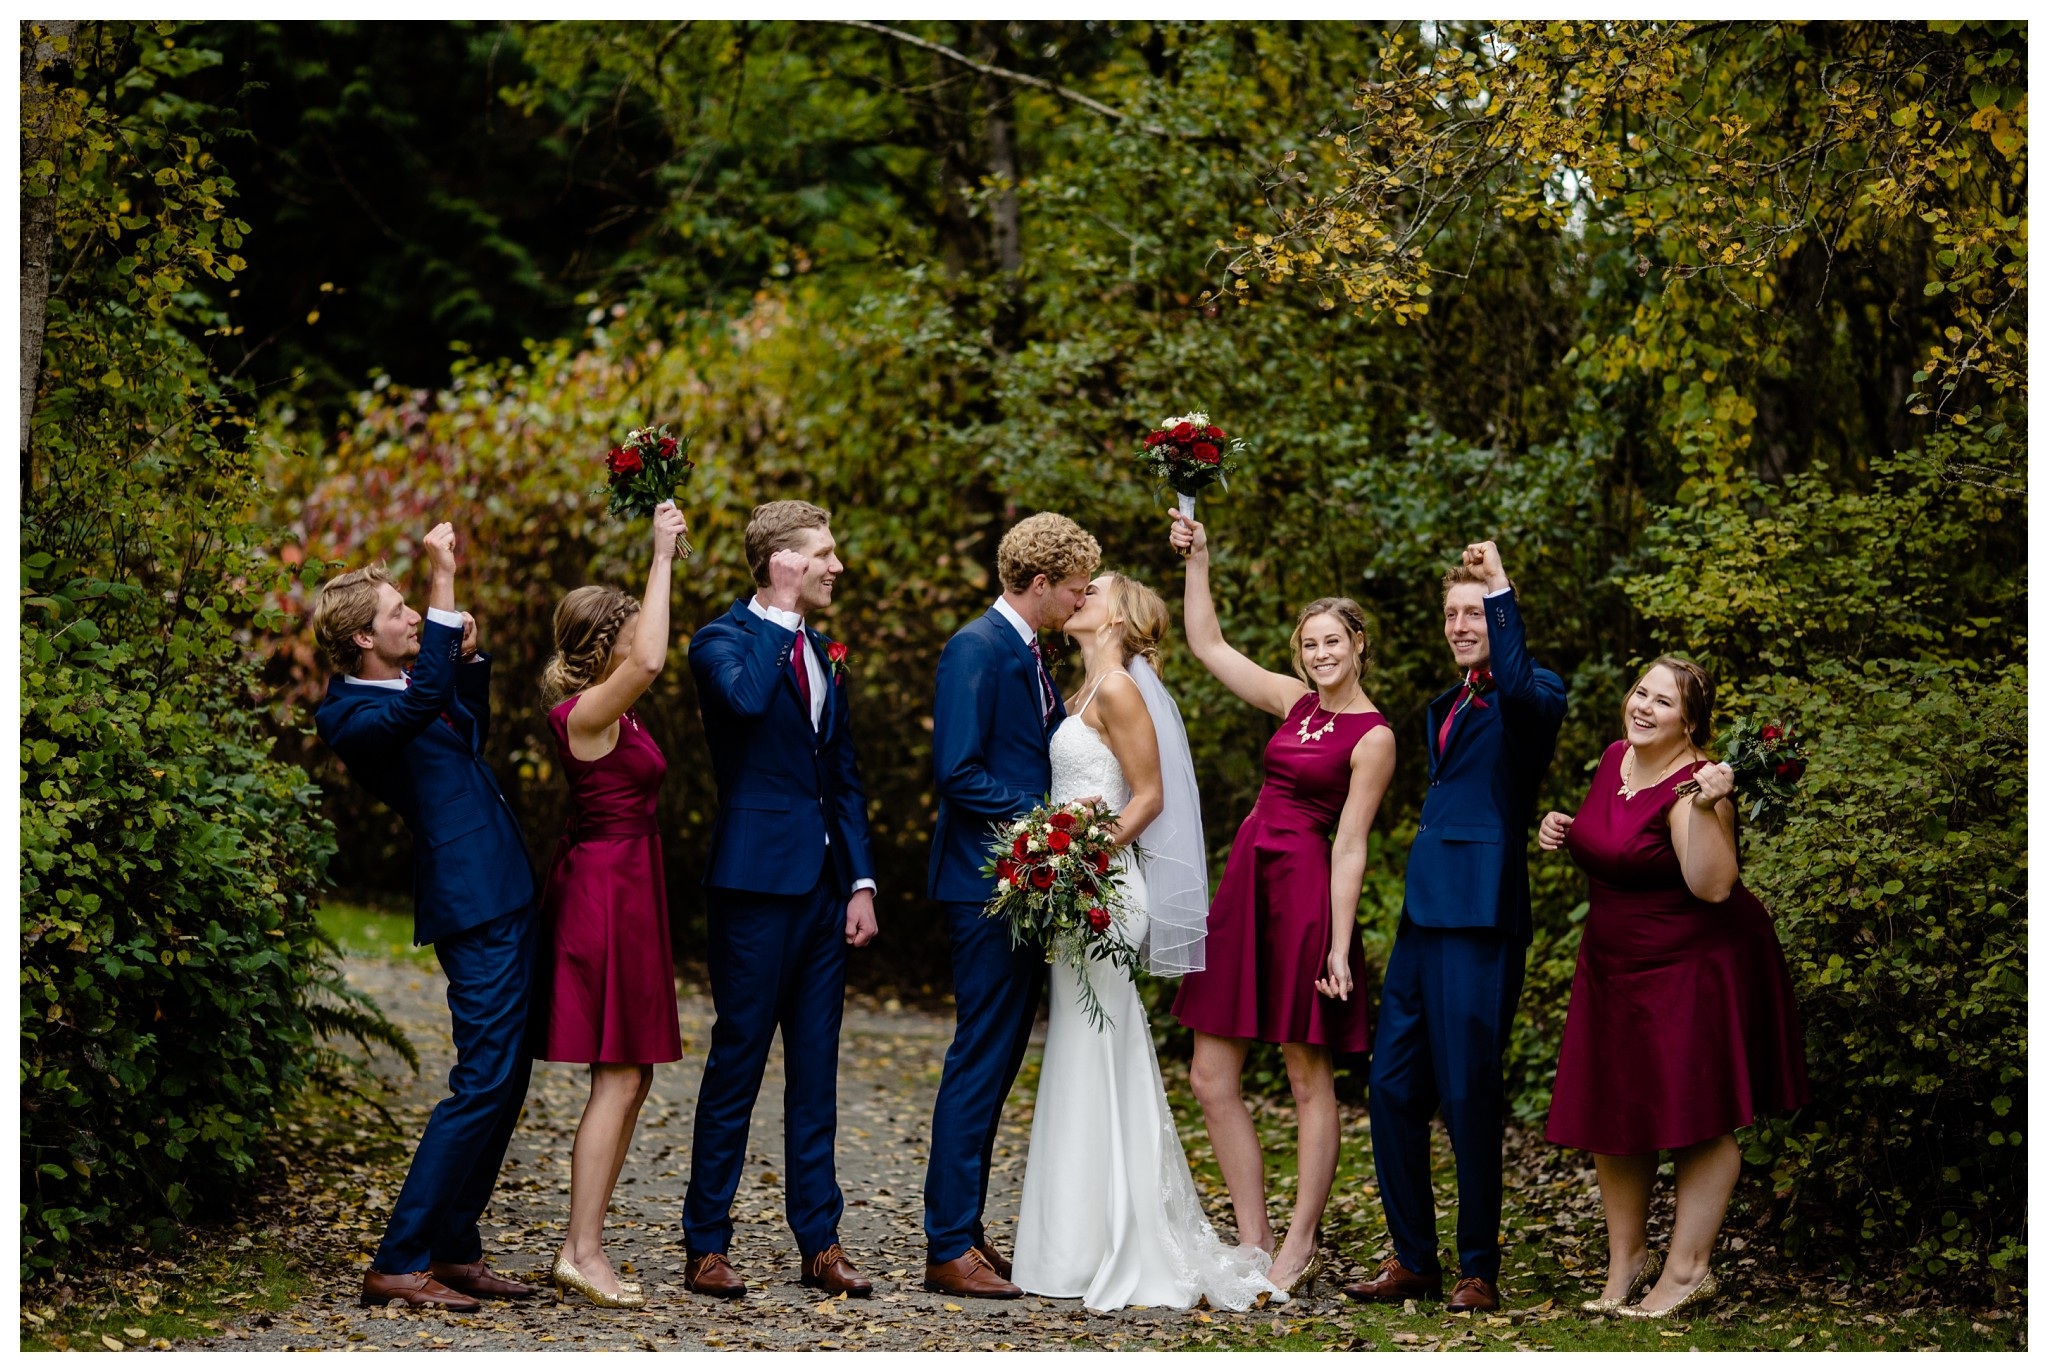 Campbell Valley Park Wedding Photographer Canadian Reformed Church Willoughby Heights Christian Fall Burgundy Navy Roses Wedding_0052.jpg